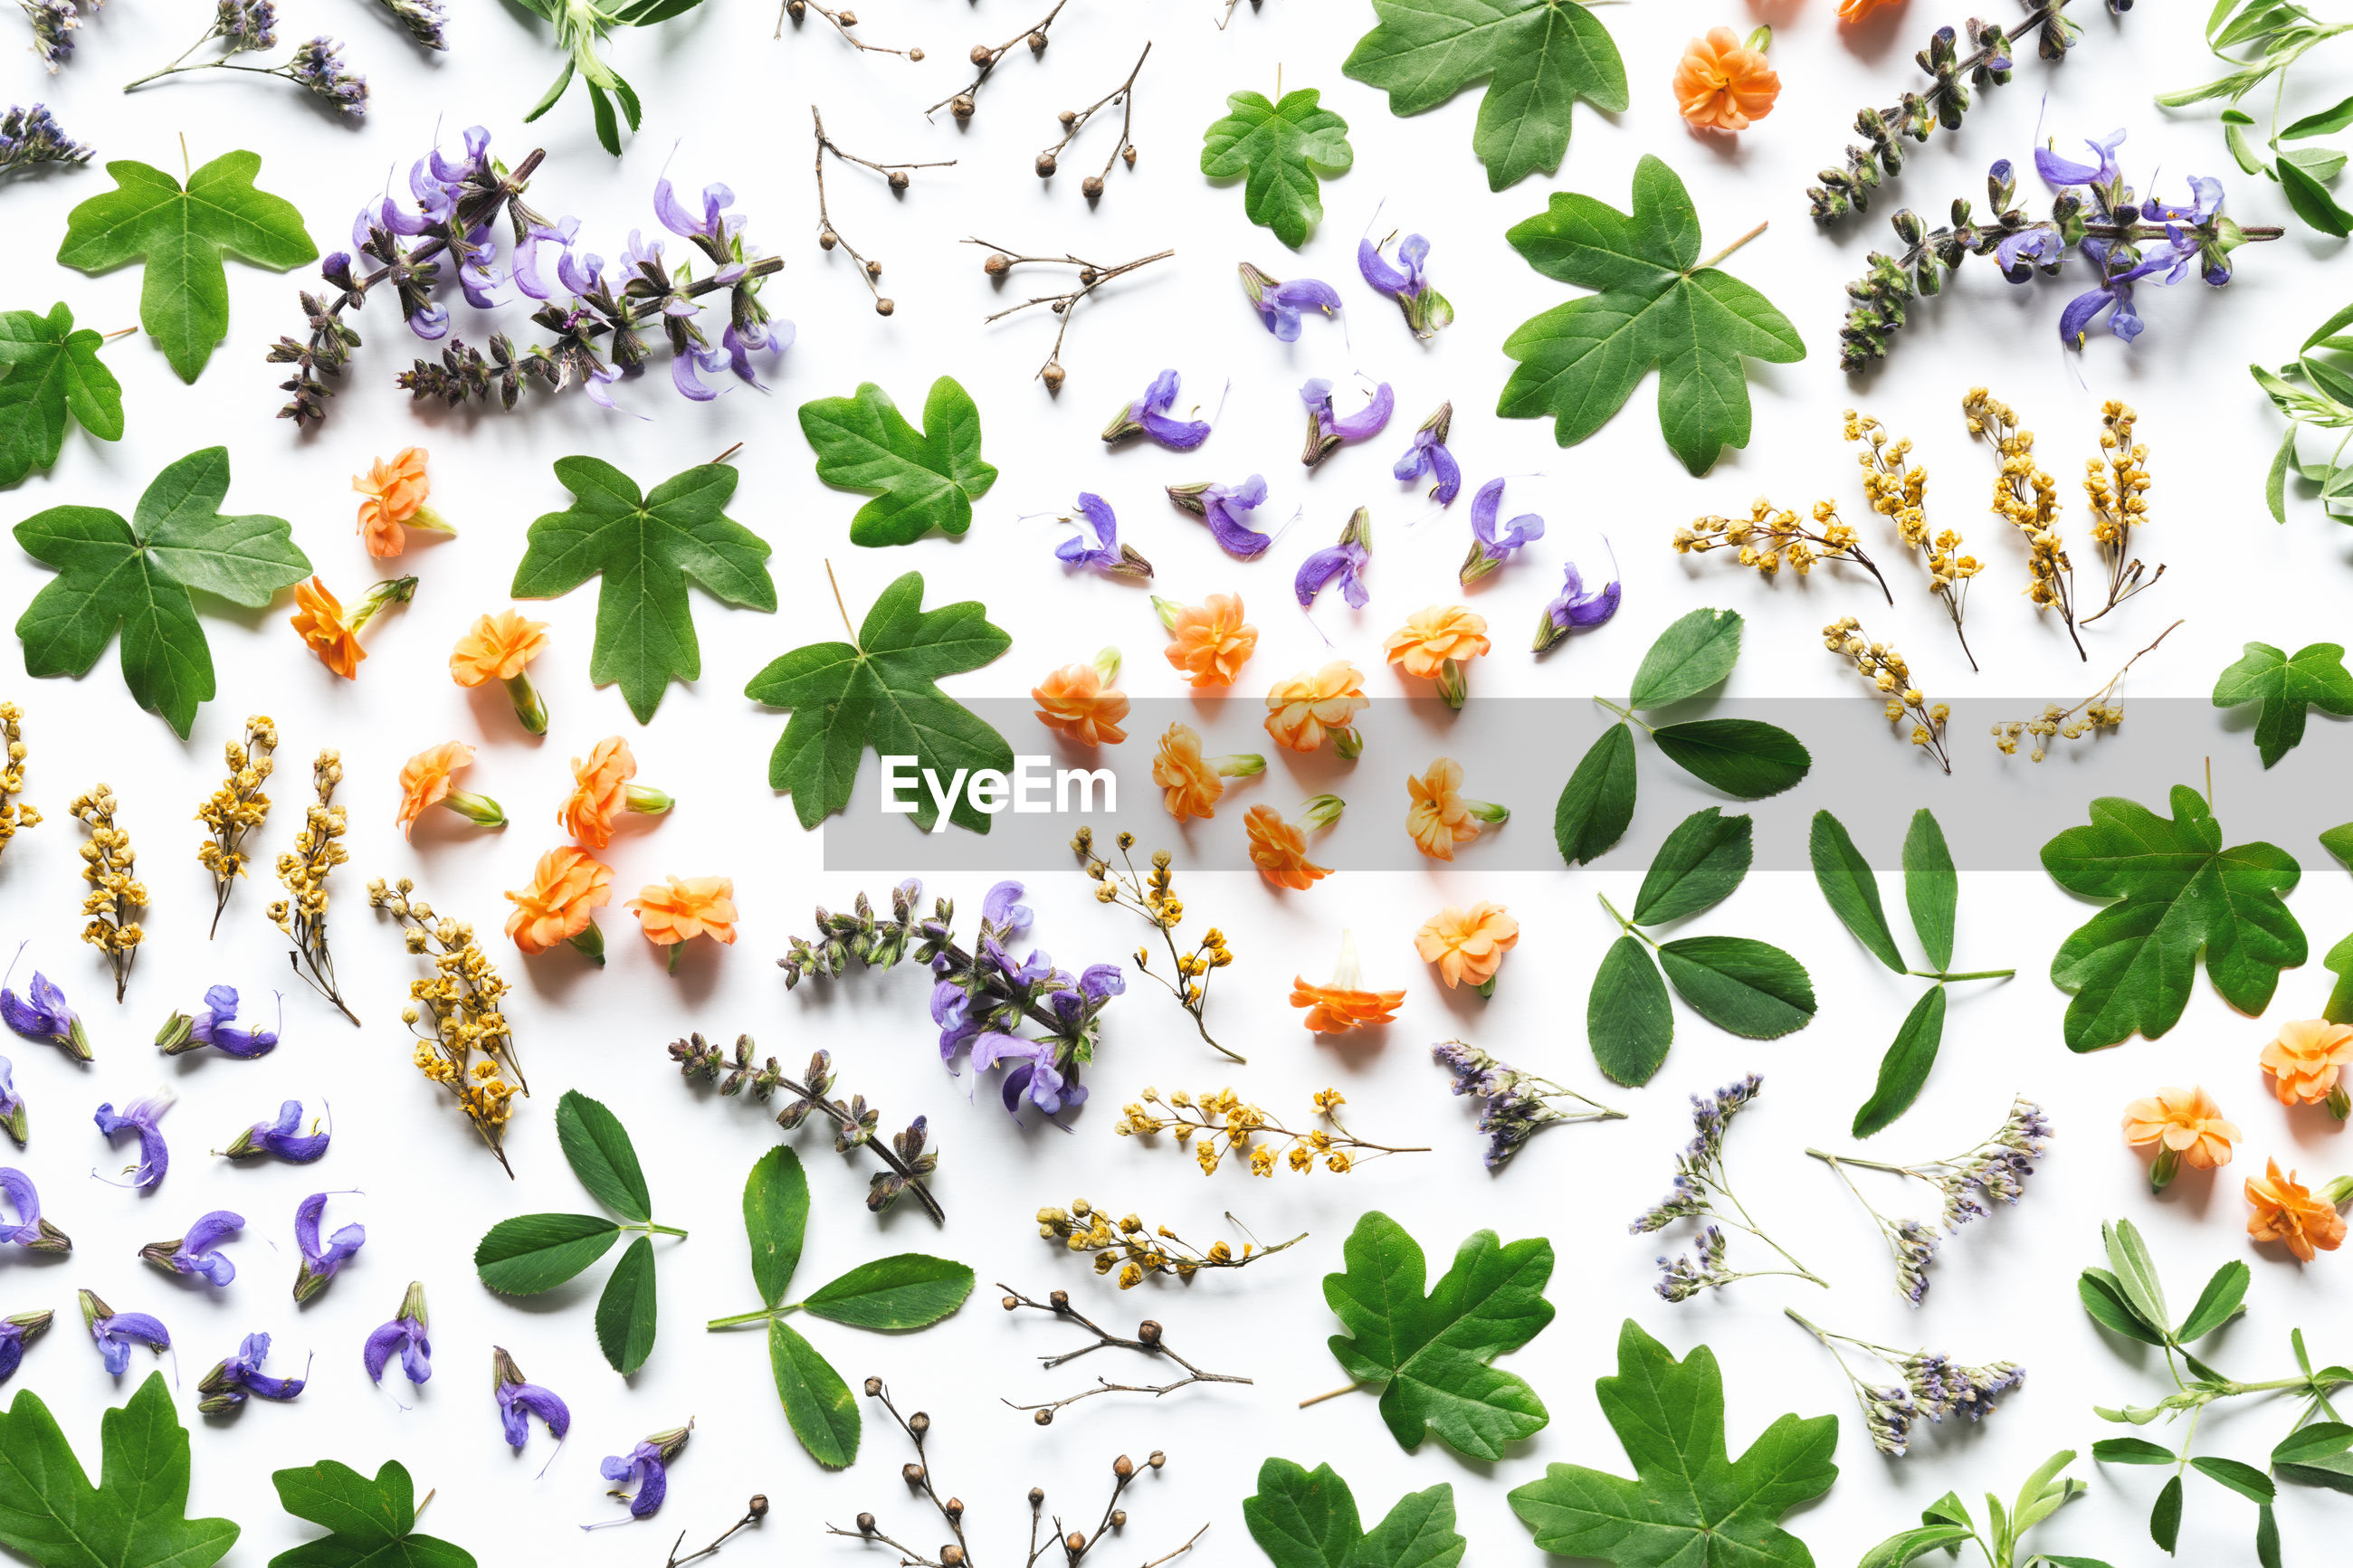 Directly above shot of colorful flowers against white background